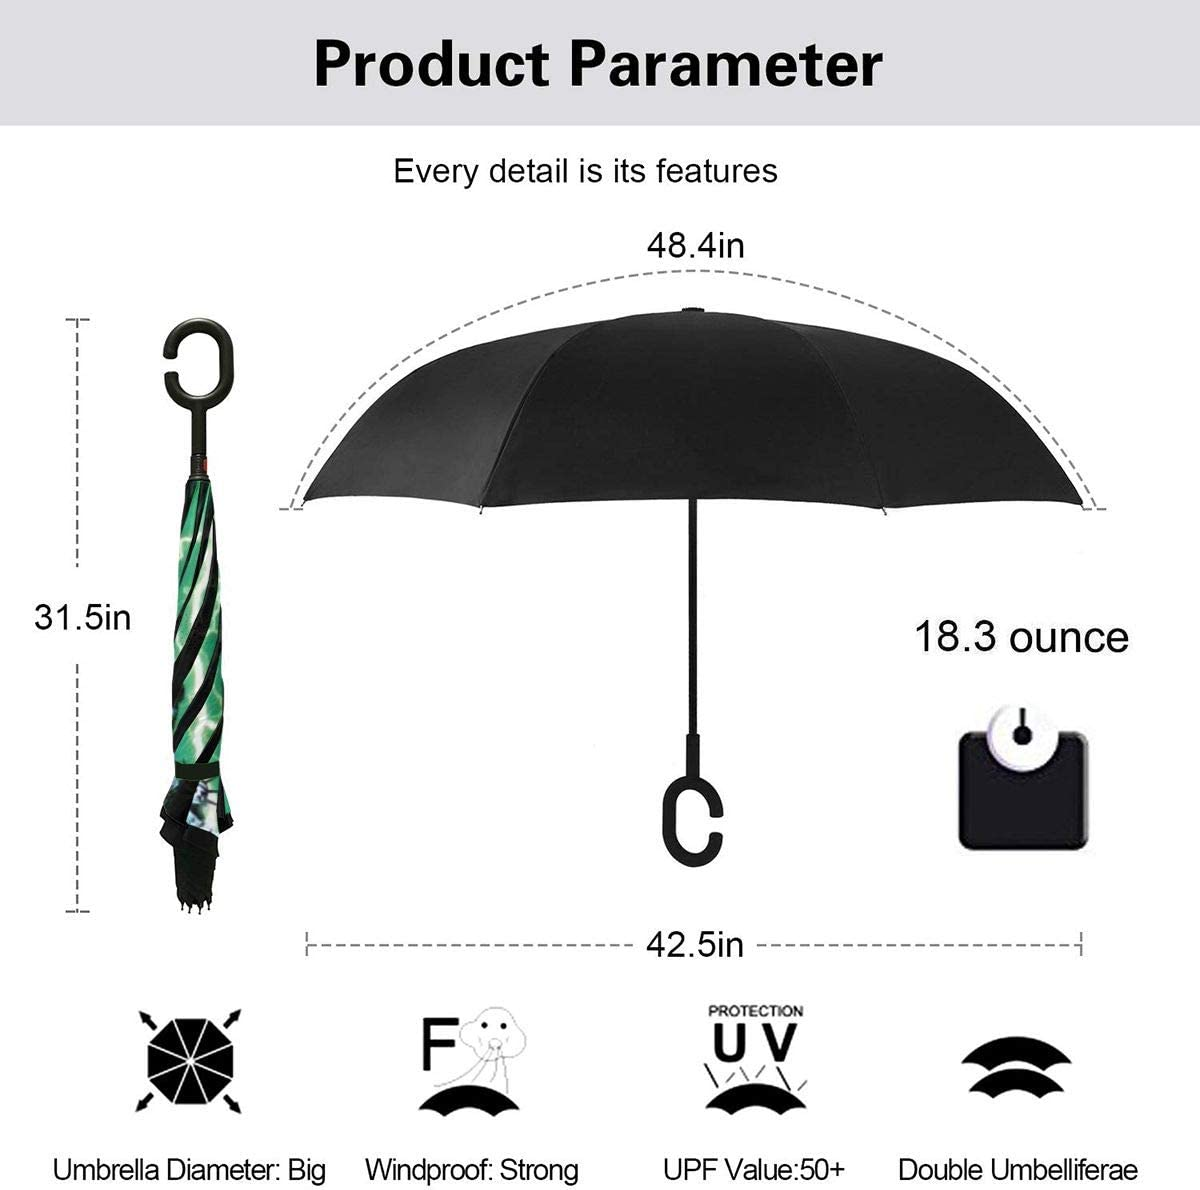 Windproof And Rainproof Double Folding Inverted Umbrella With C-Shaped Handle UV Protection Inverted Folding Umbrellas Statue Of Liberty And Godzilla Car Reverse Umbrella